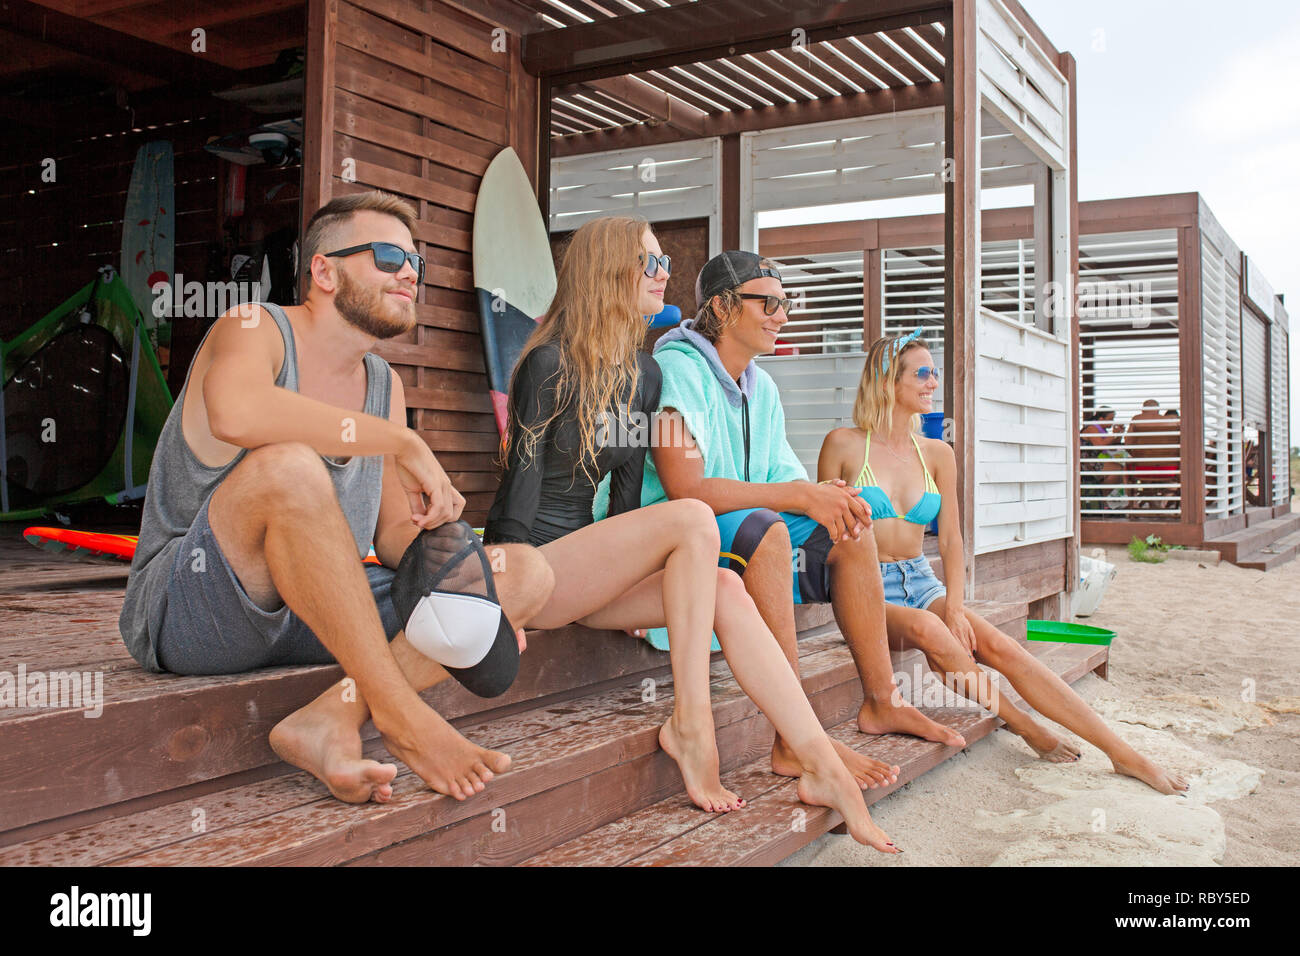 friendship, sea, summer vacation, water sport and people concept - group of friends wearing swimwear sitting with surfboards on beach - Stock Image